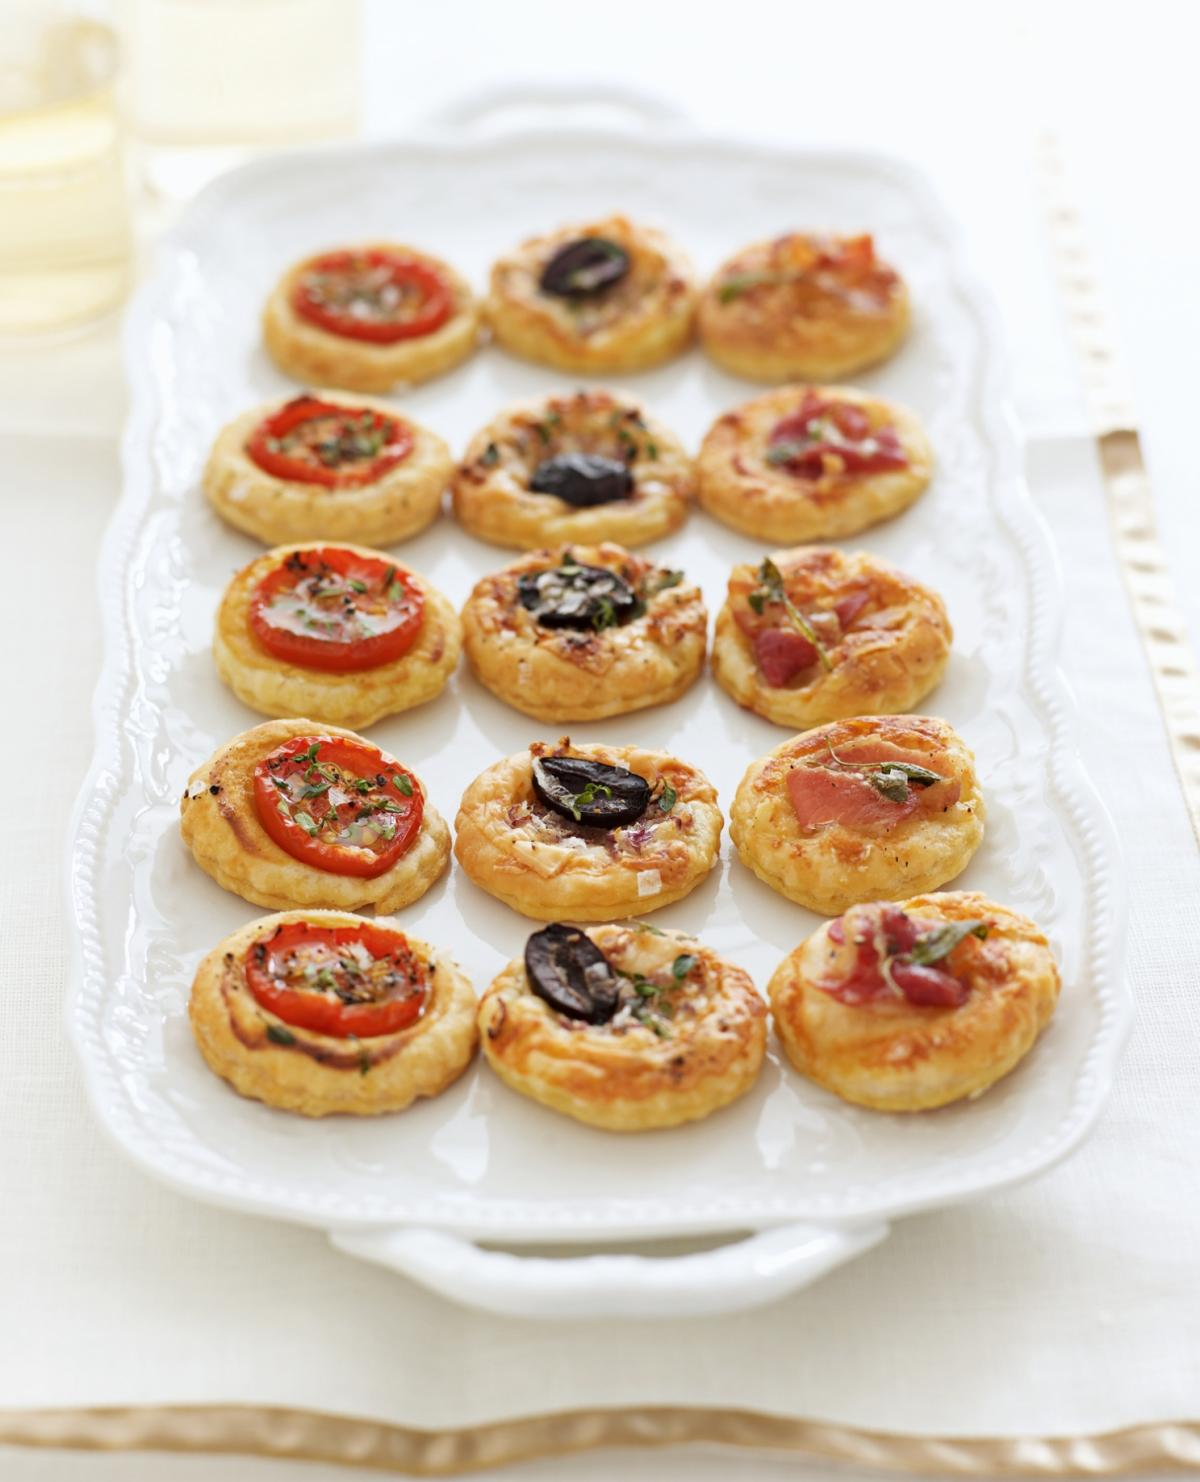 Party food recipes delia online a picture of delias quiches and tarts recipes forumfinder Gallery